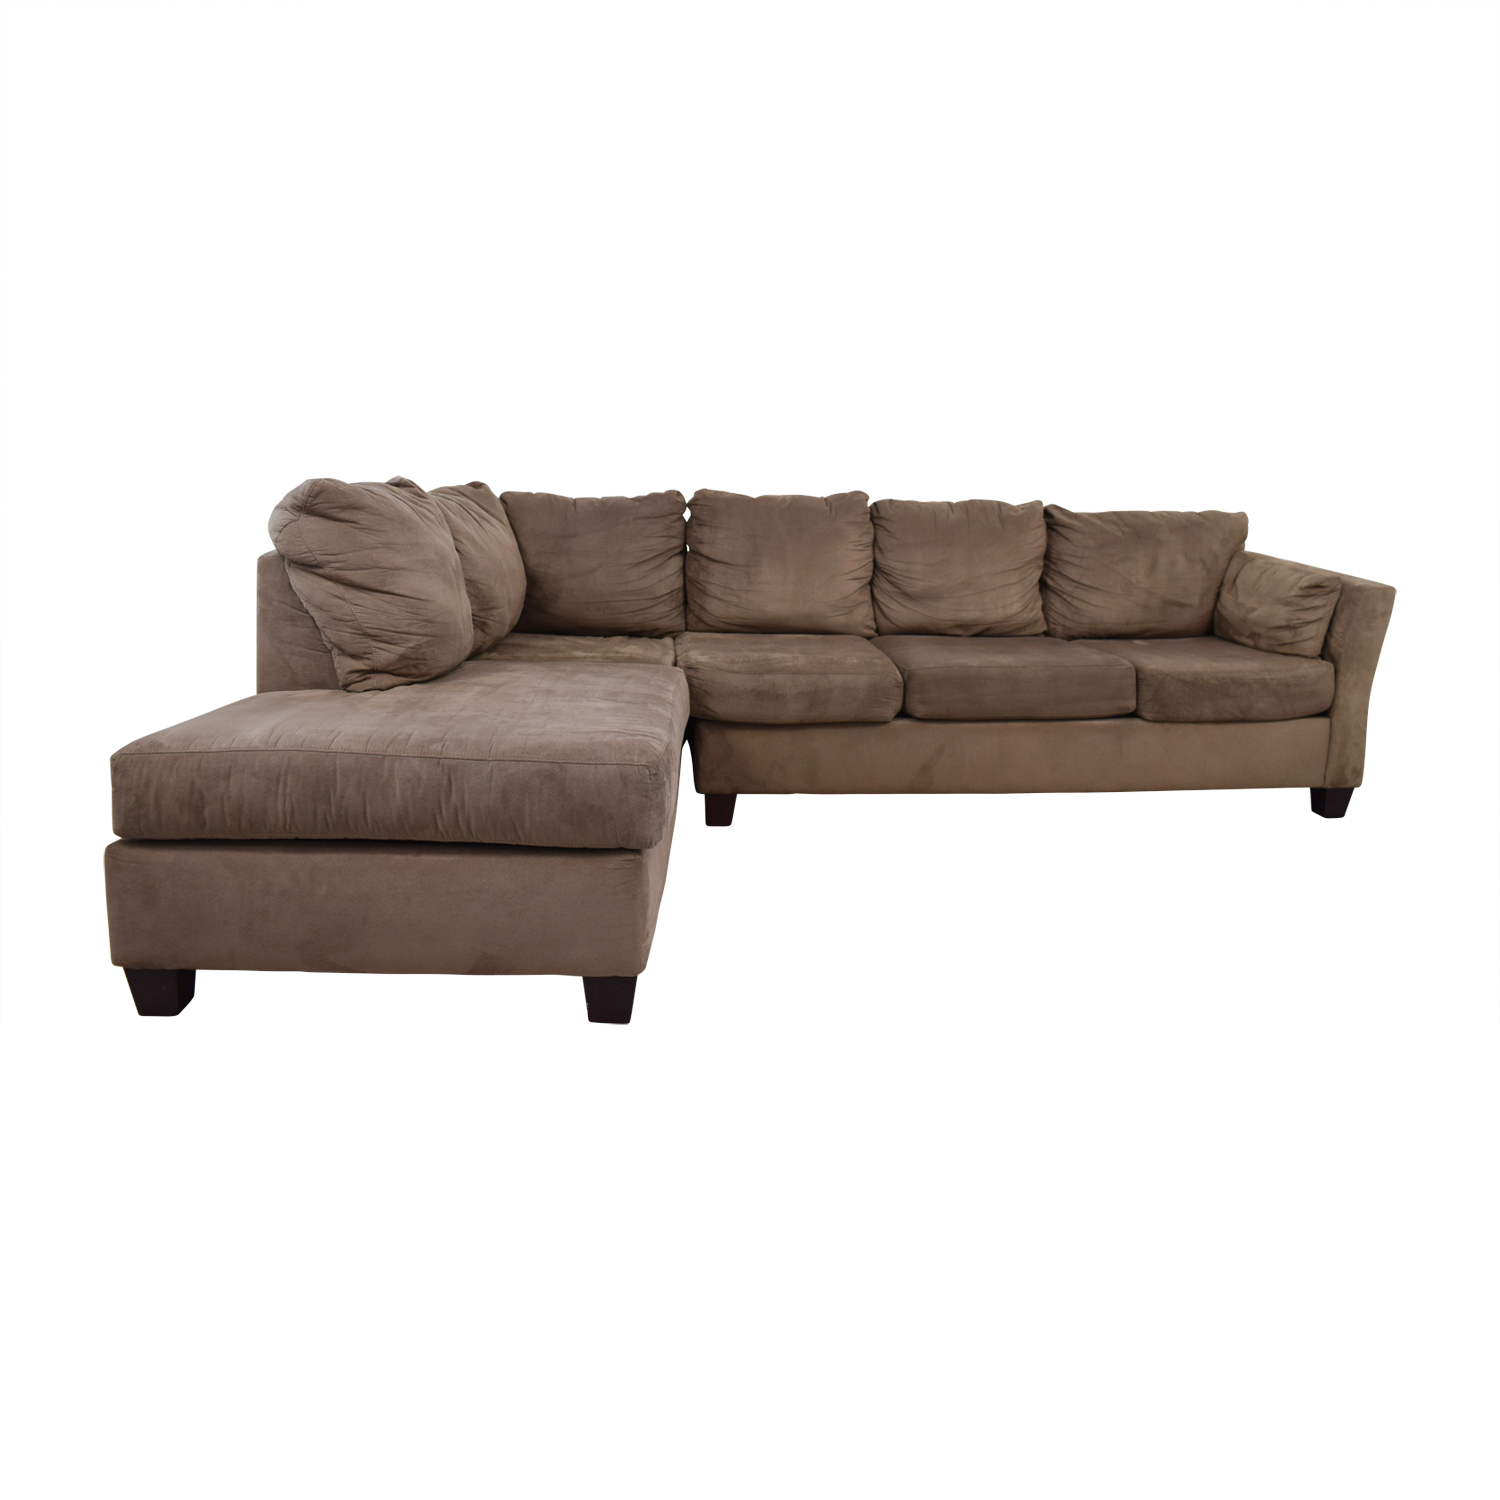 shop Bobs Furniture Brown Microfiber Sectional Bobs Furniture Sectionals